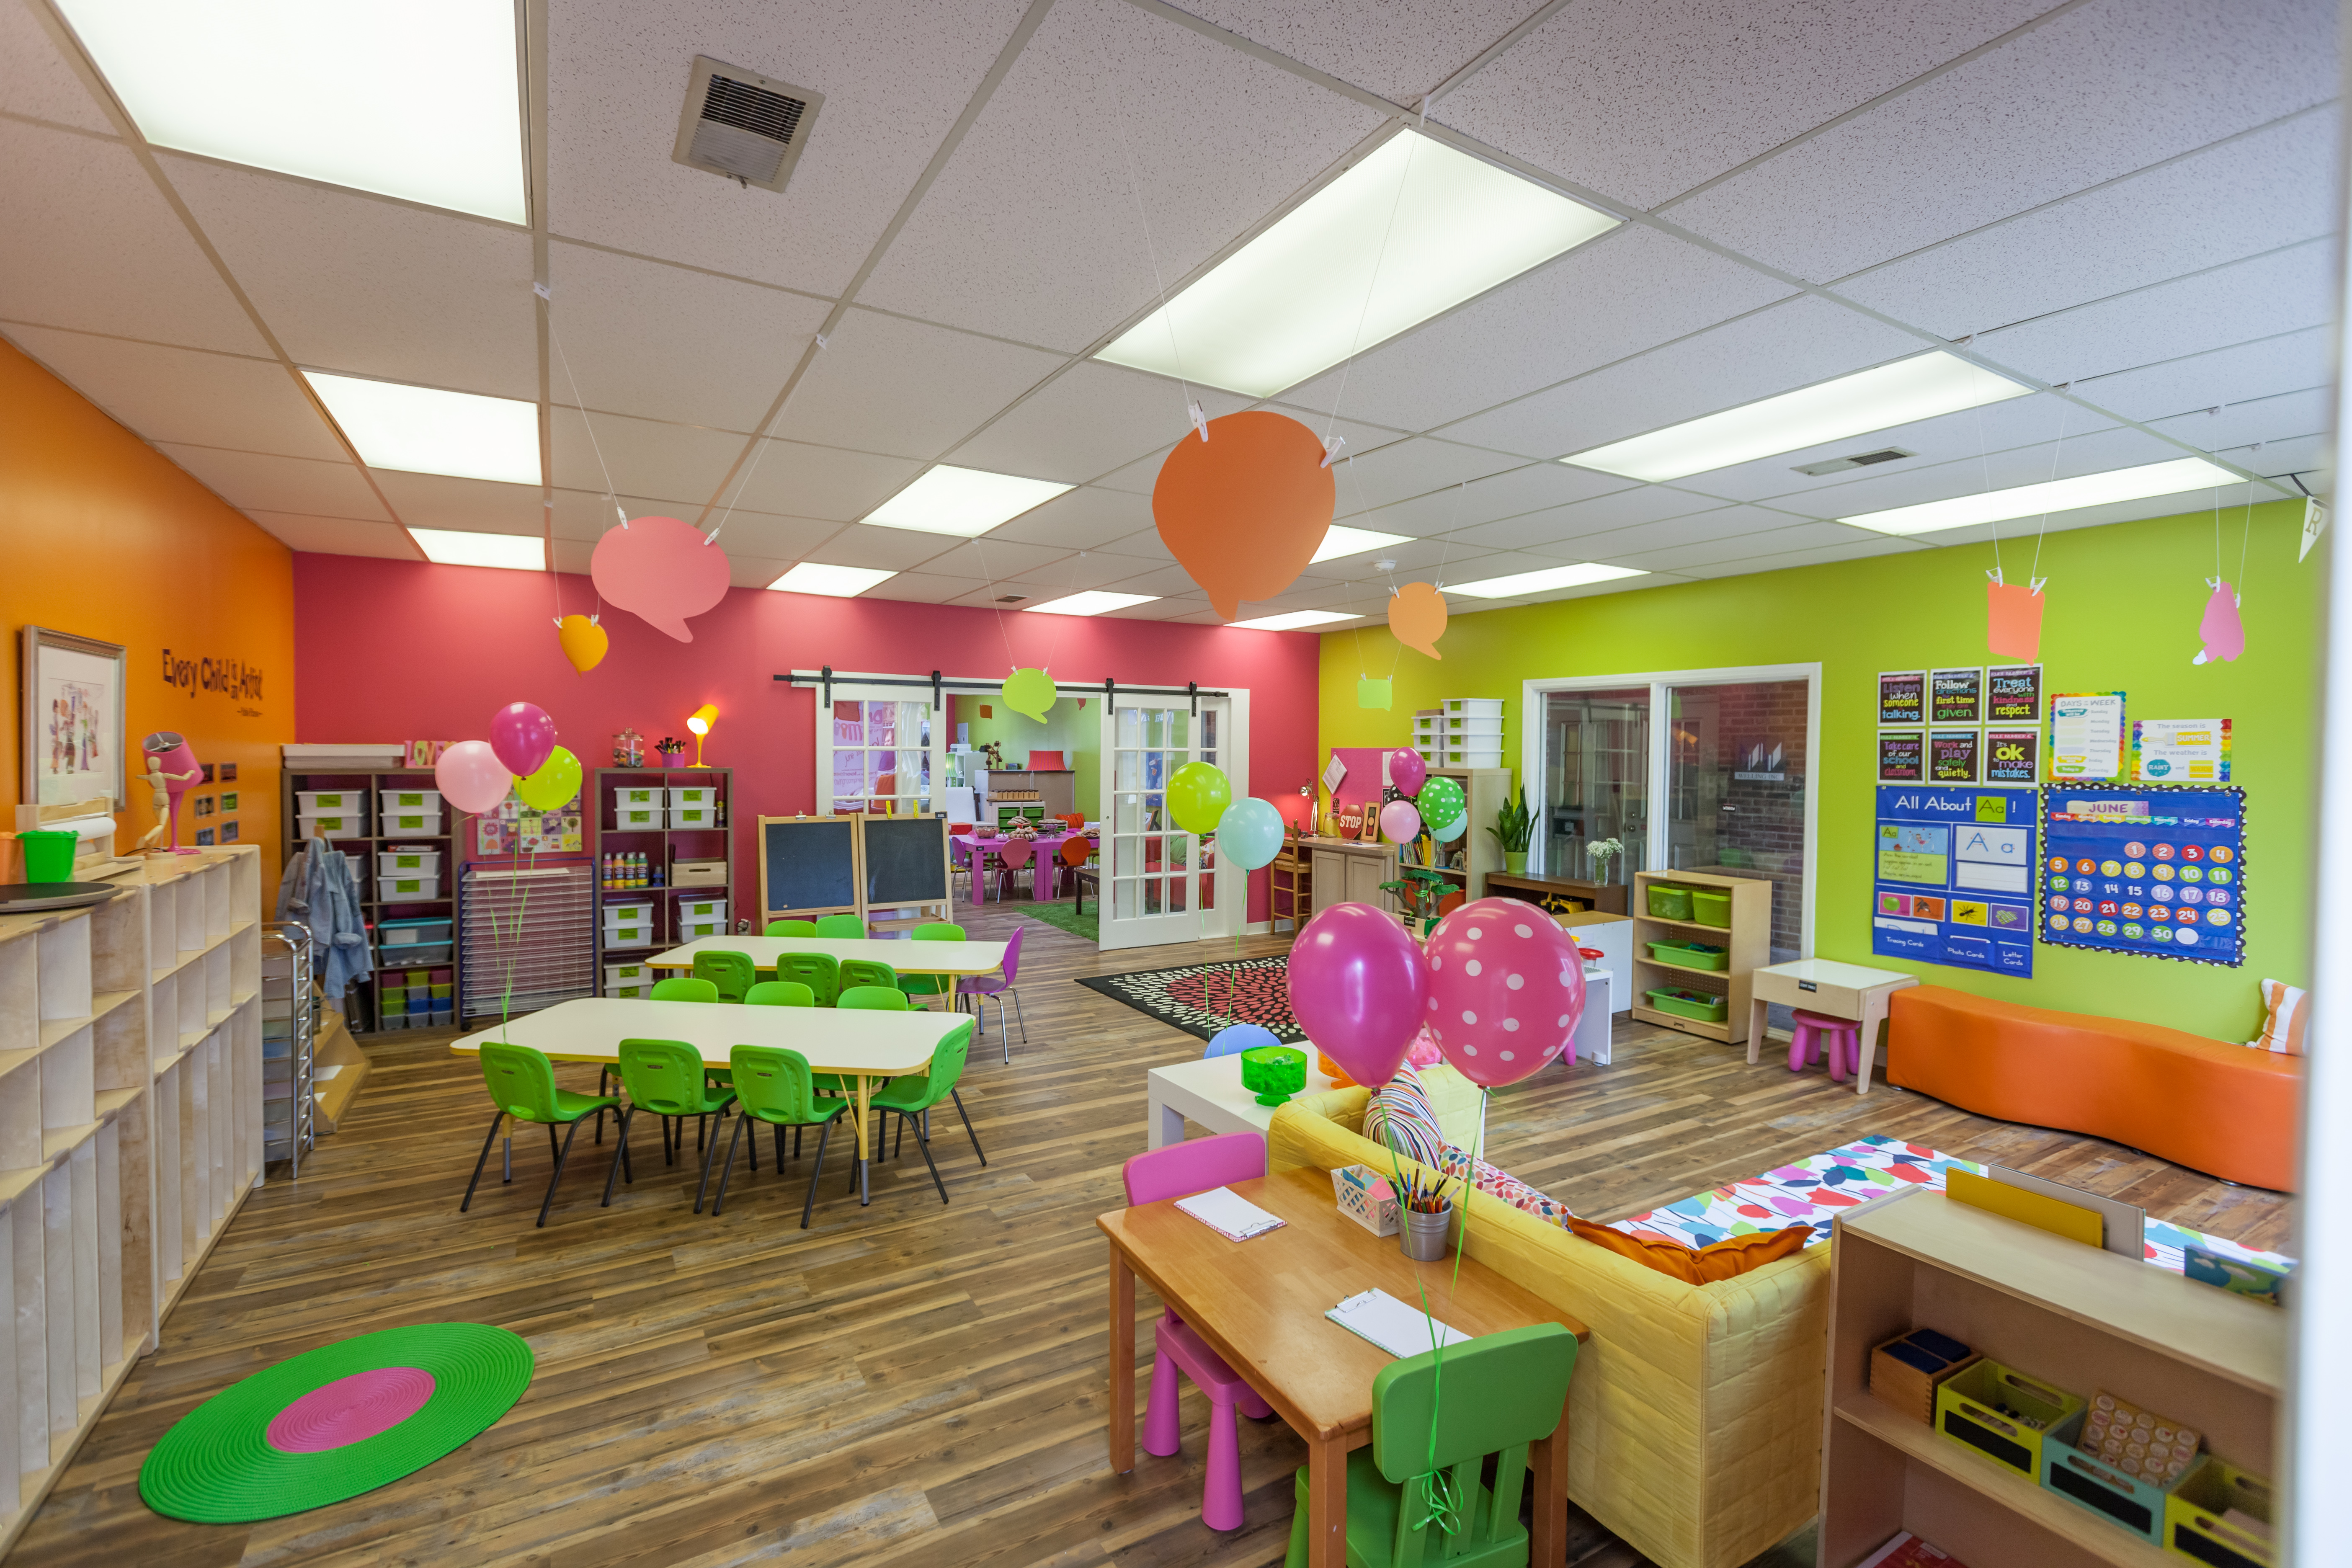 A room with lots of balloons and tables set up